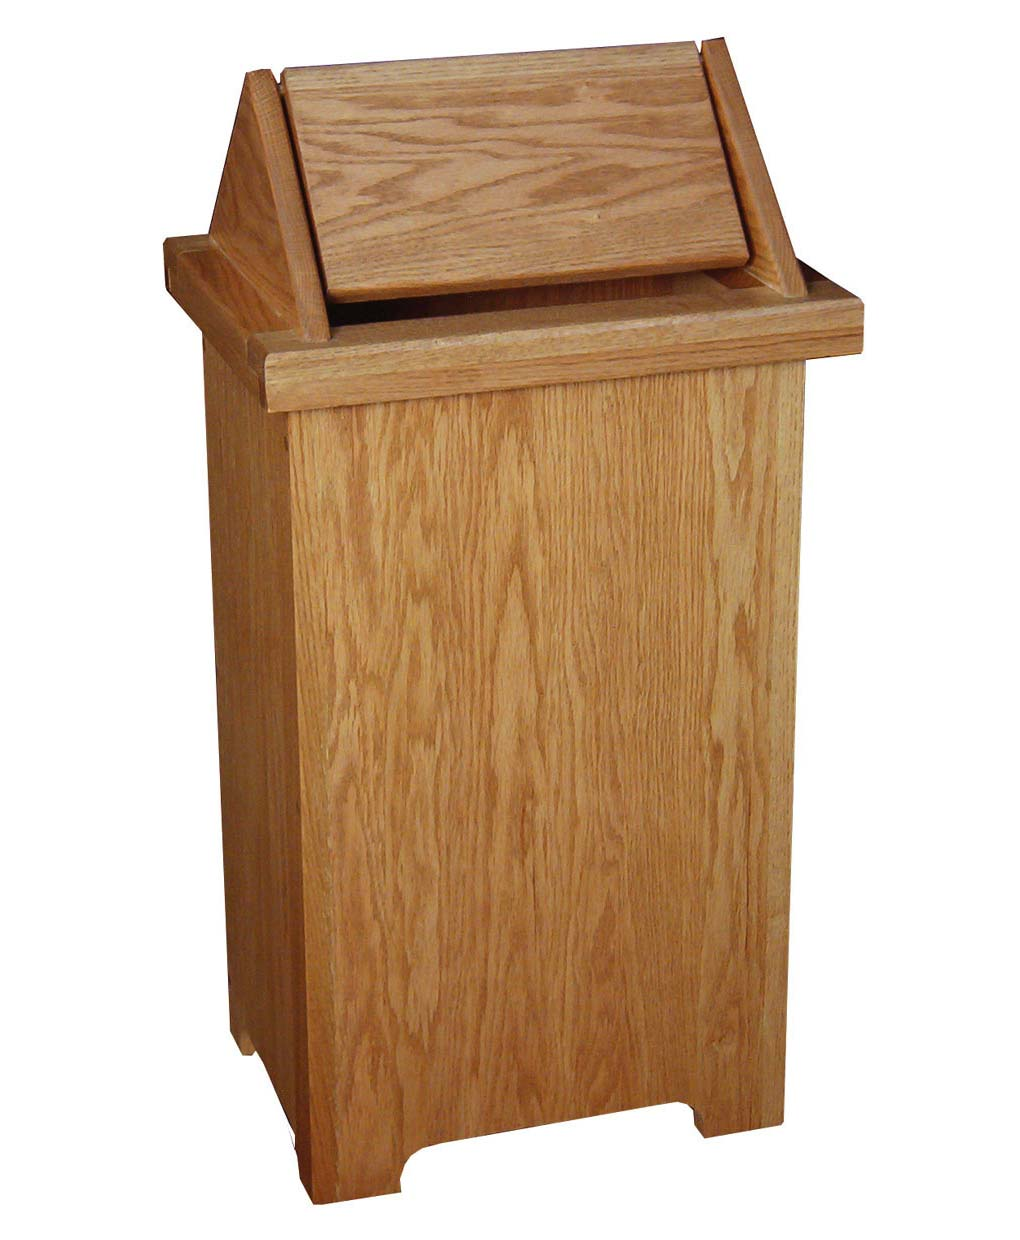 Wooden Wastebasket Amish Direct Furniture